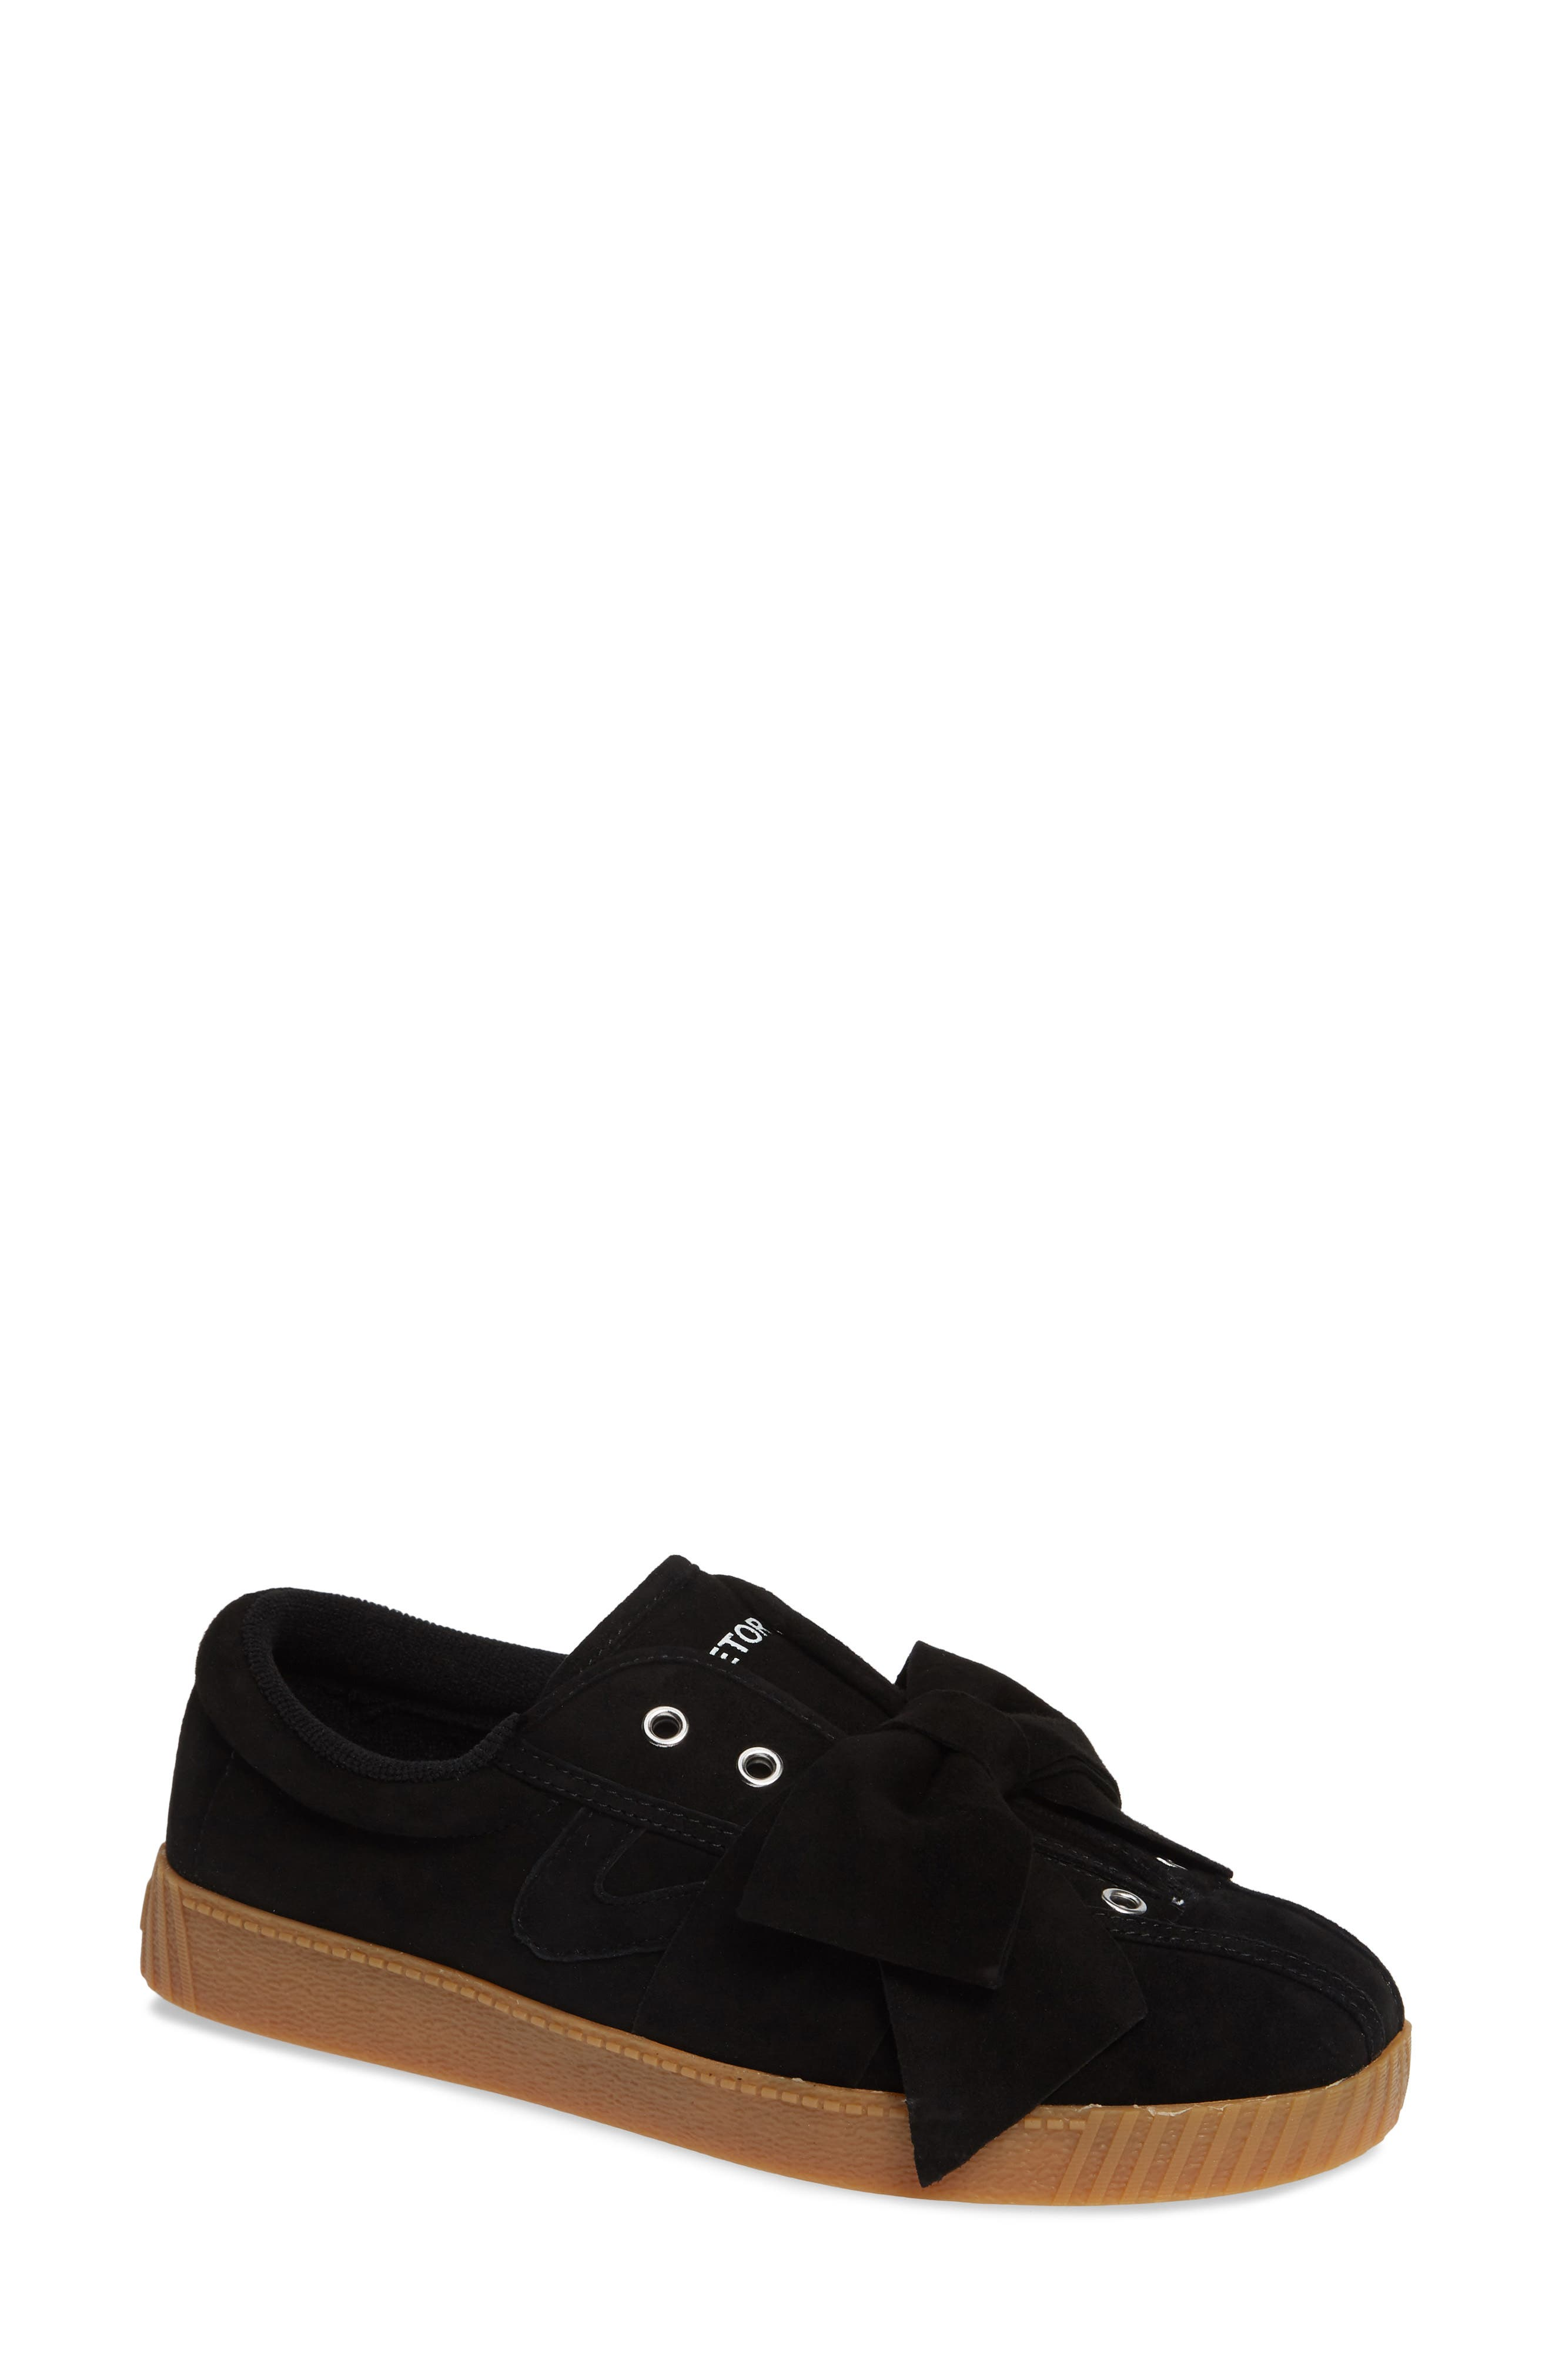 TRETORN Nylite Silky Suede Lace-Up Sneakers W/ Bow in Black